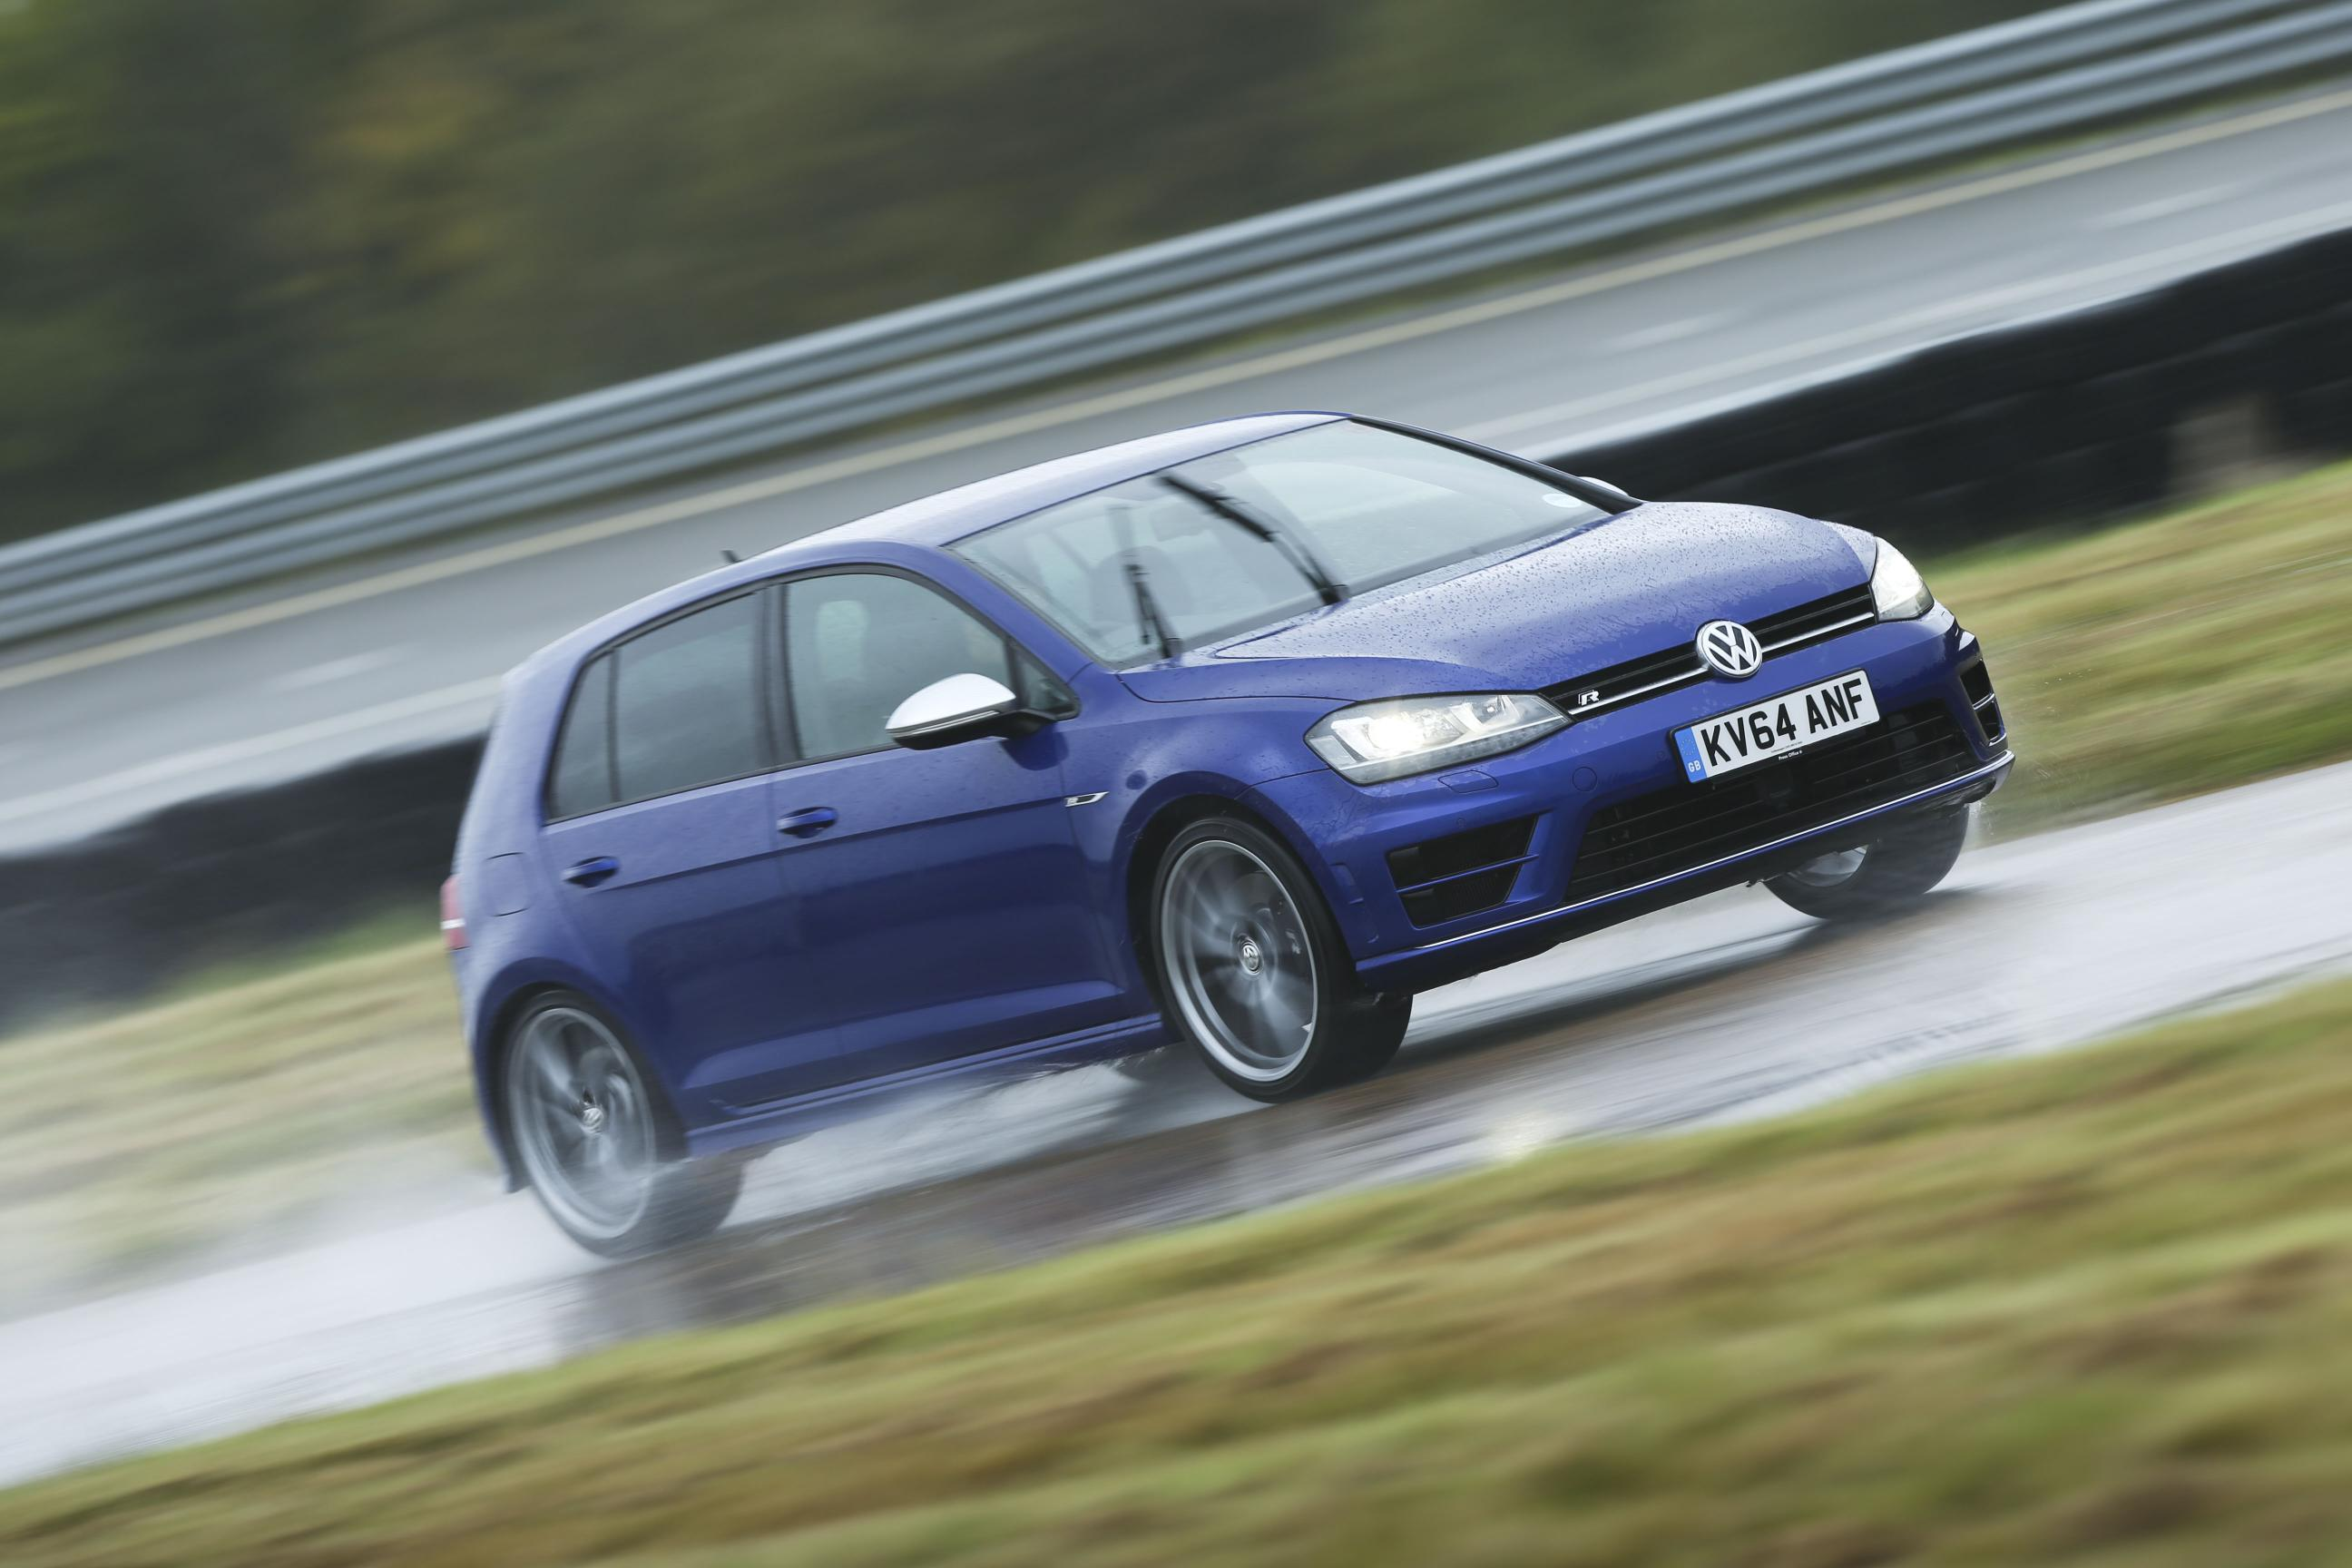 similiar wet car keywords best performance car to have in the wet according to autocar magazine